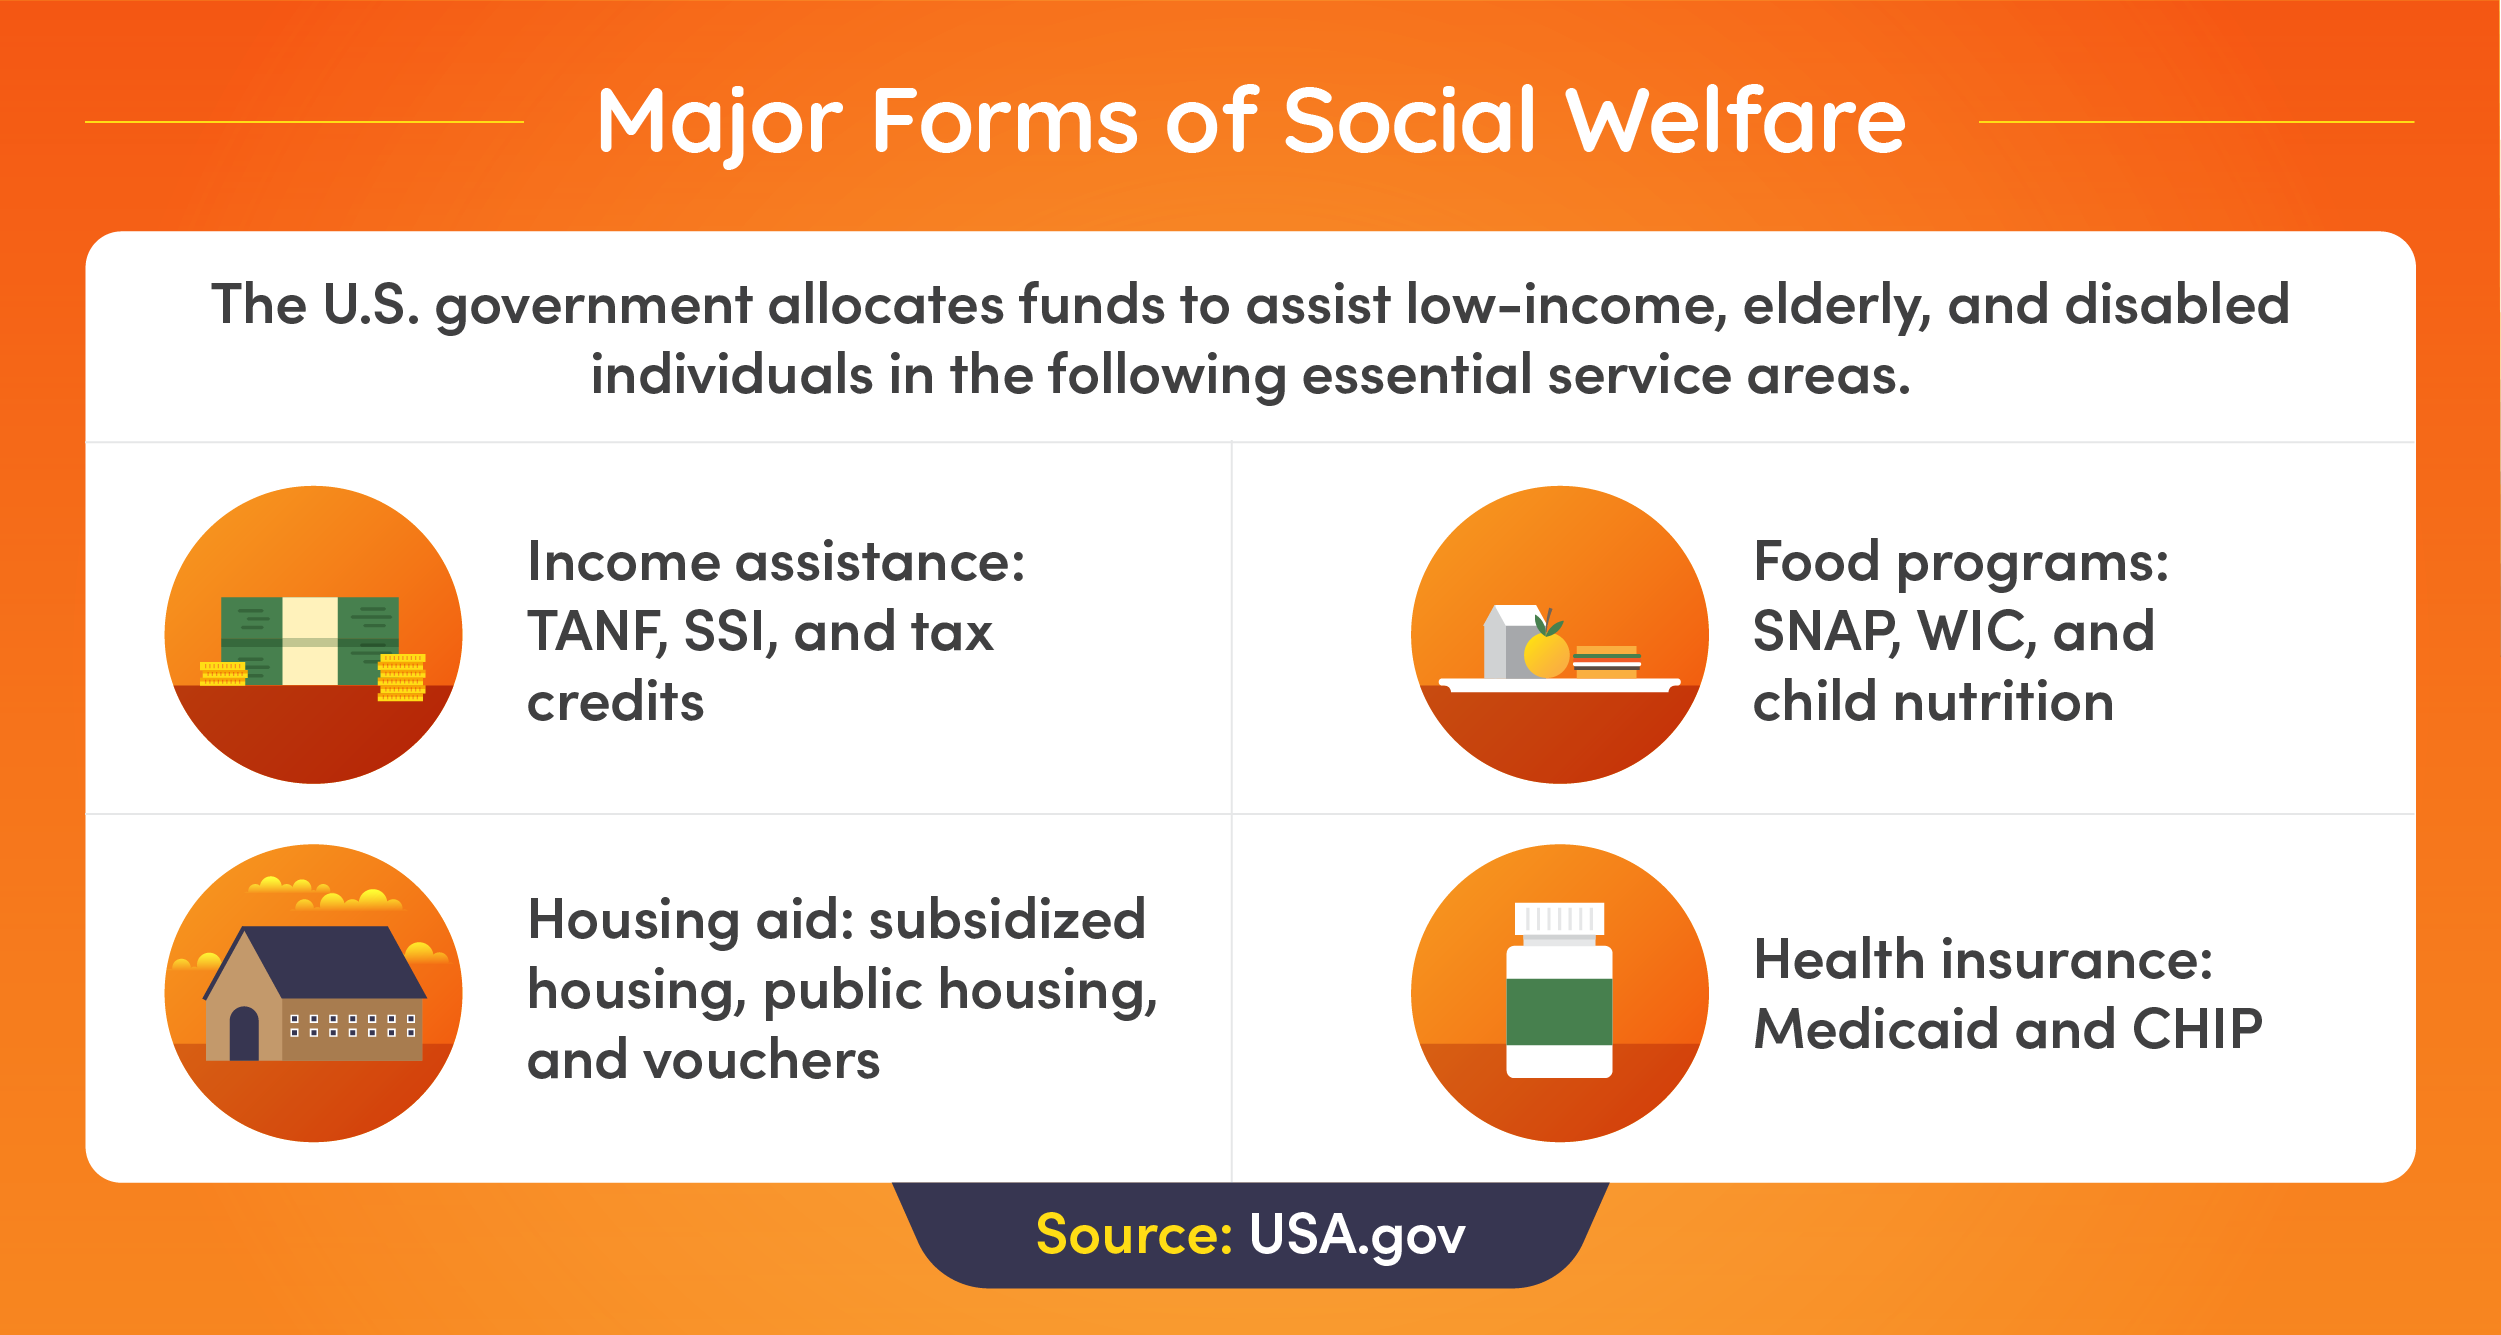 The U.S. government allocates funds to assist individuals in several service areas.